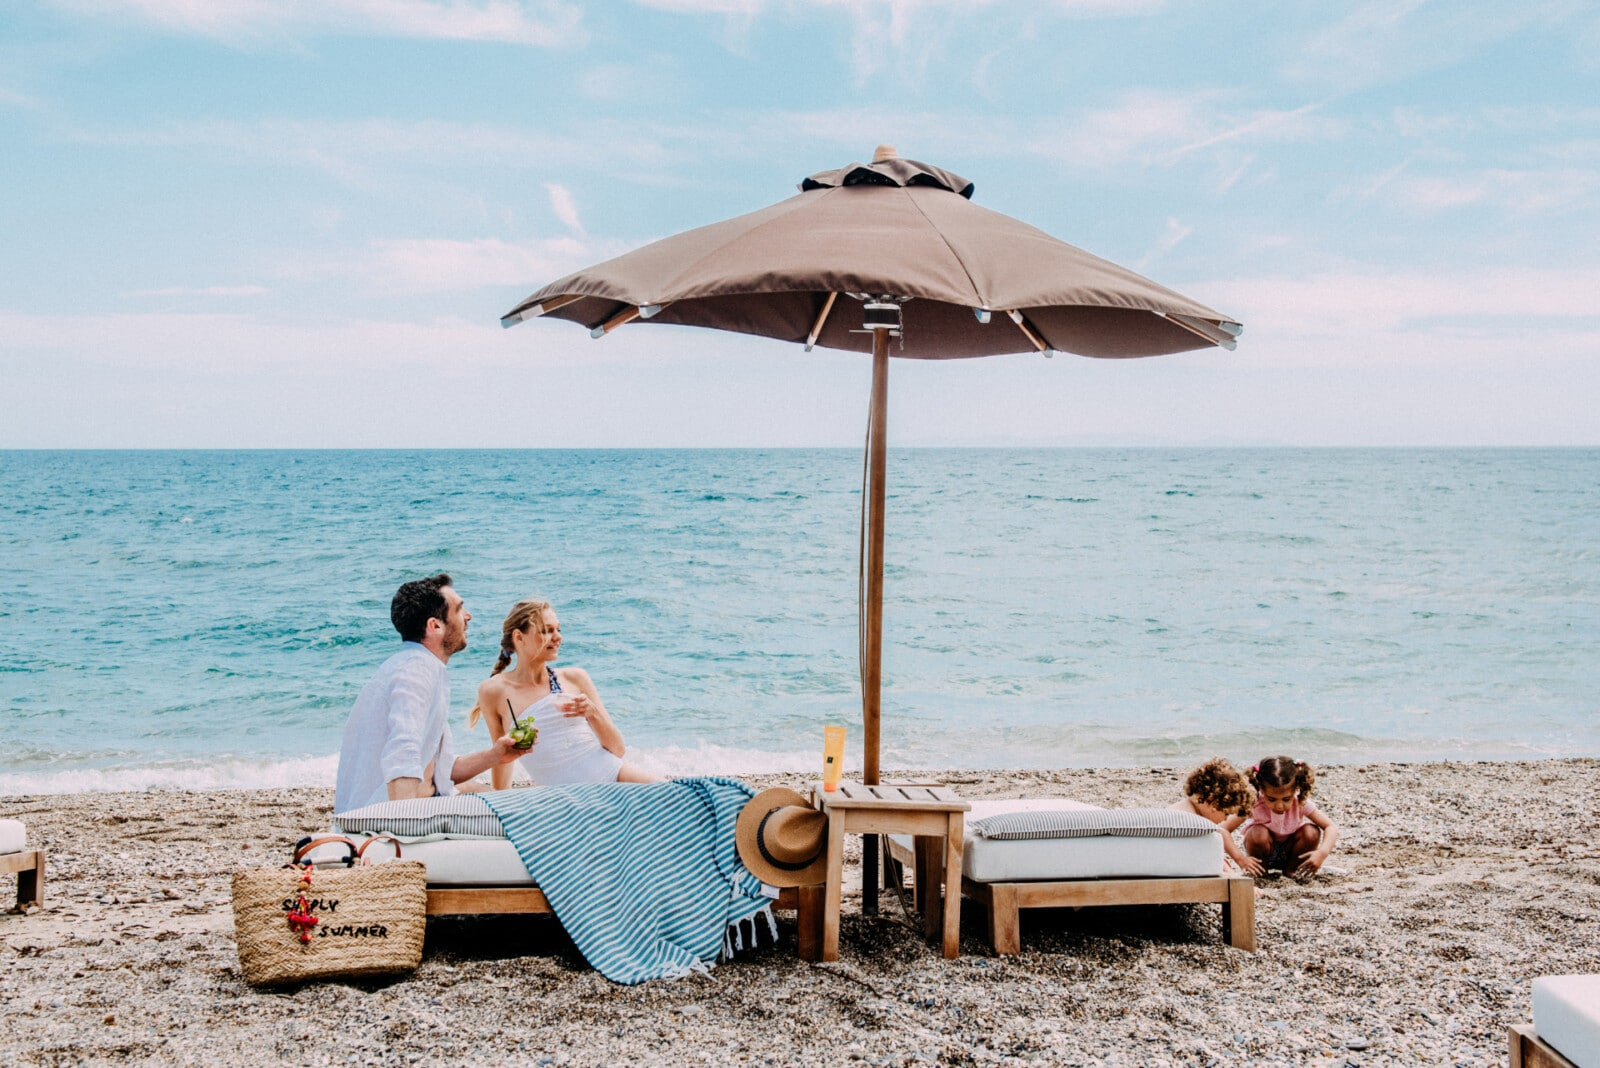 Blissful beachside moments for families at our family friendly hotel in Samos